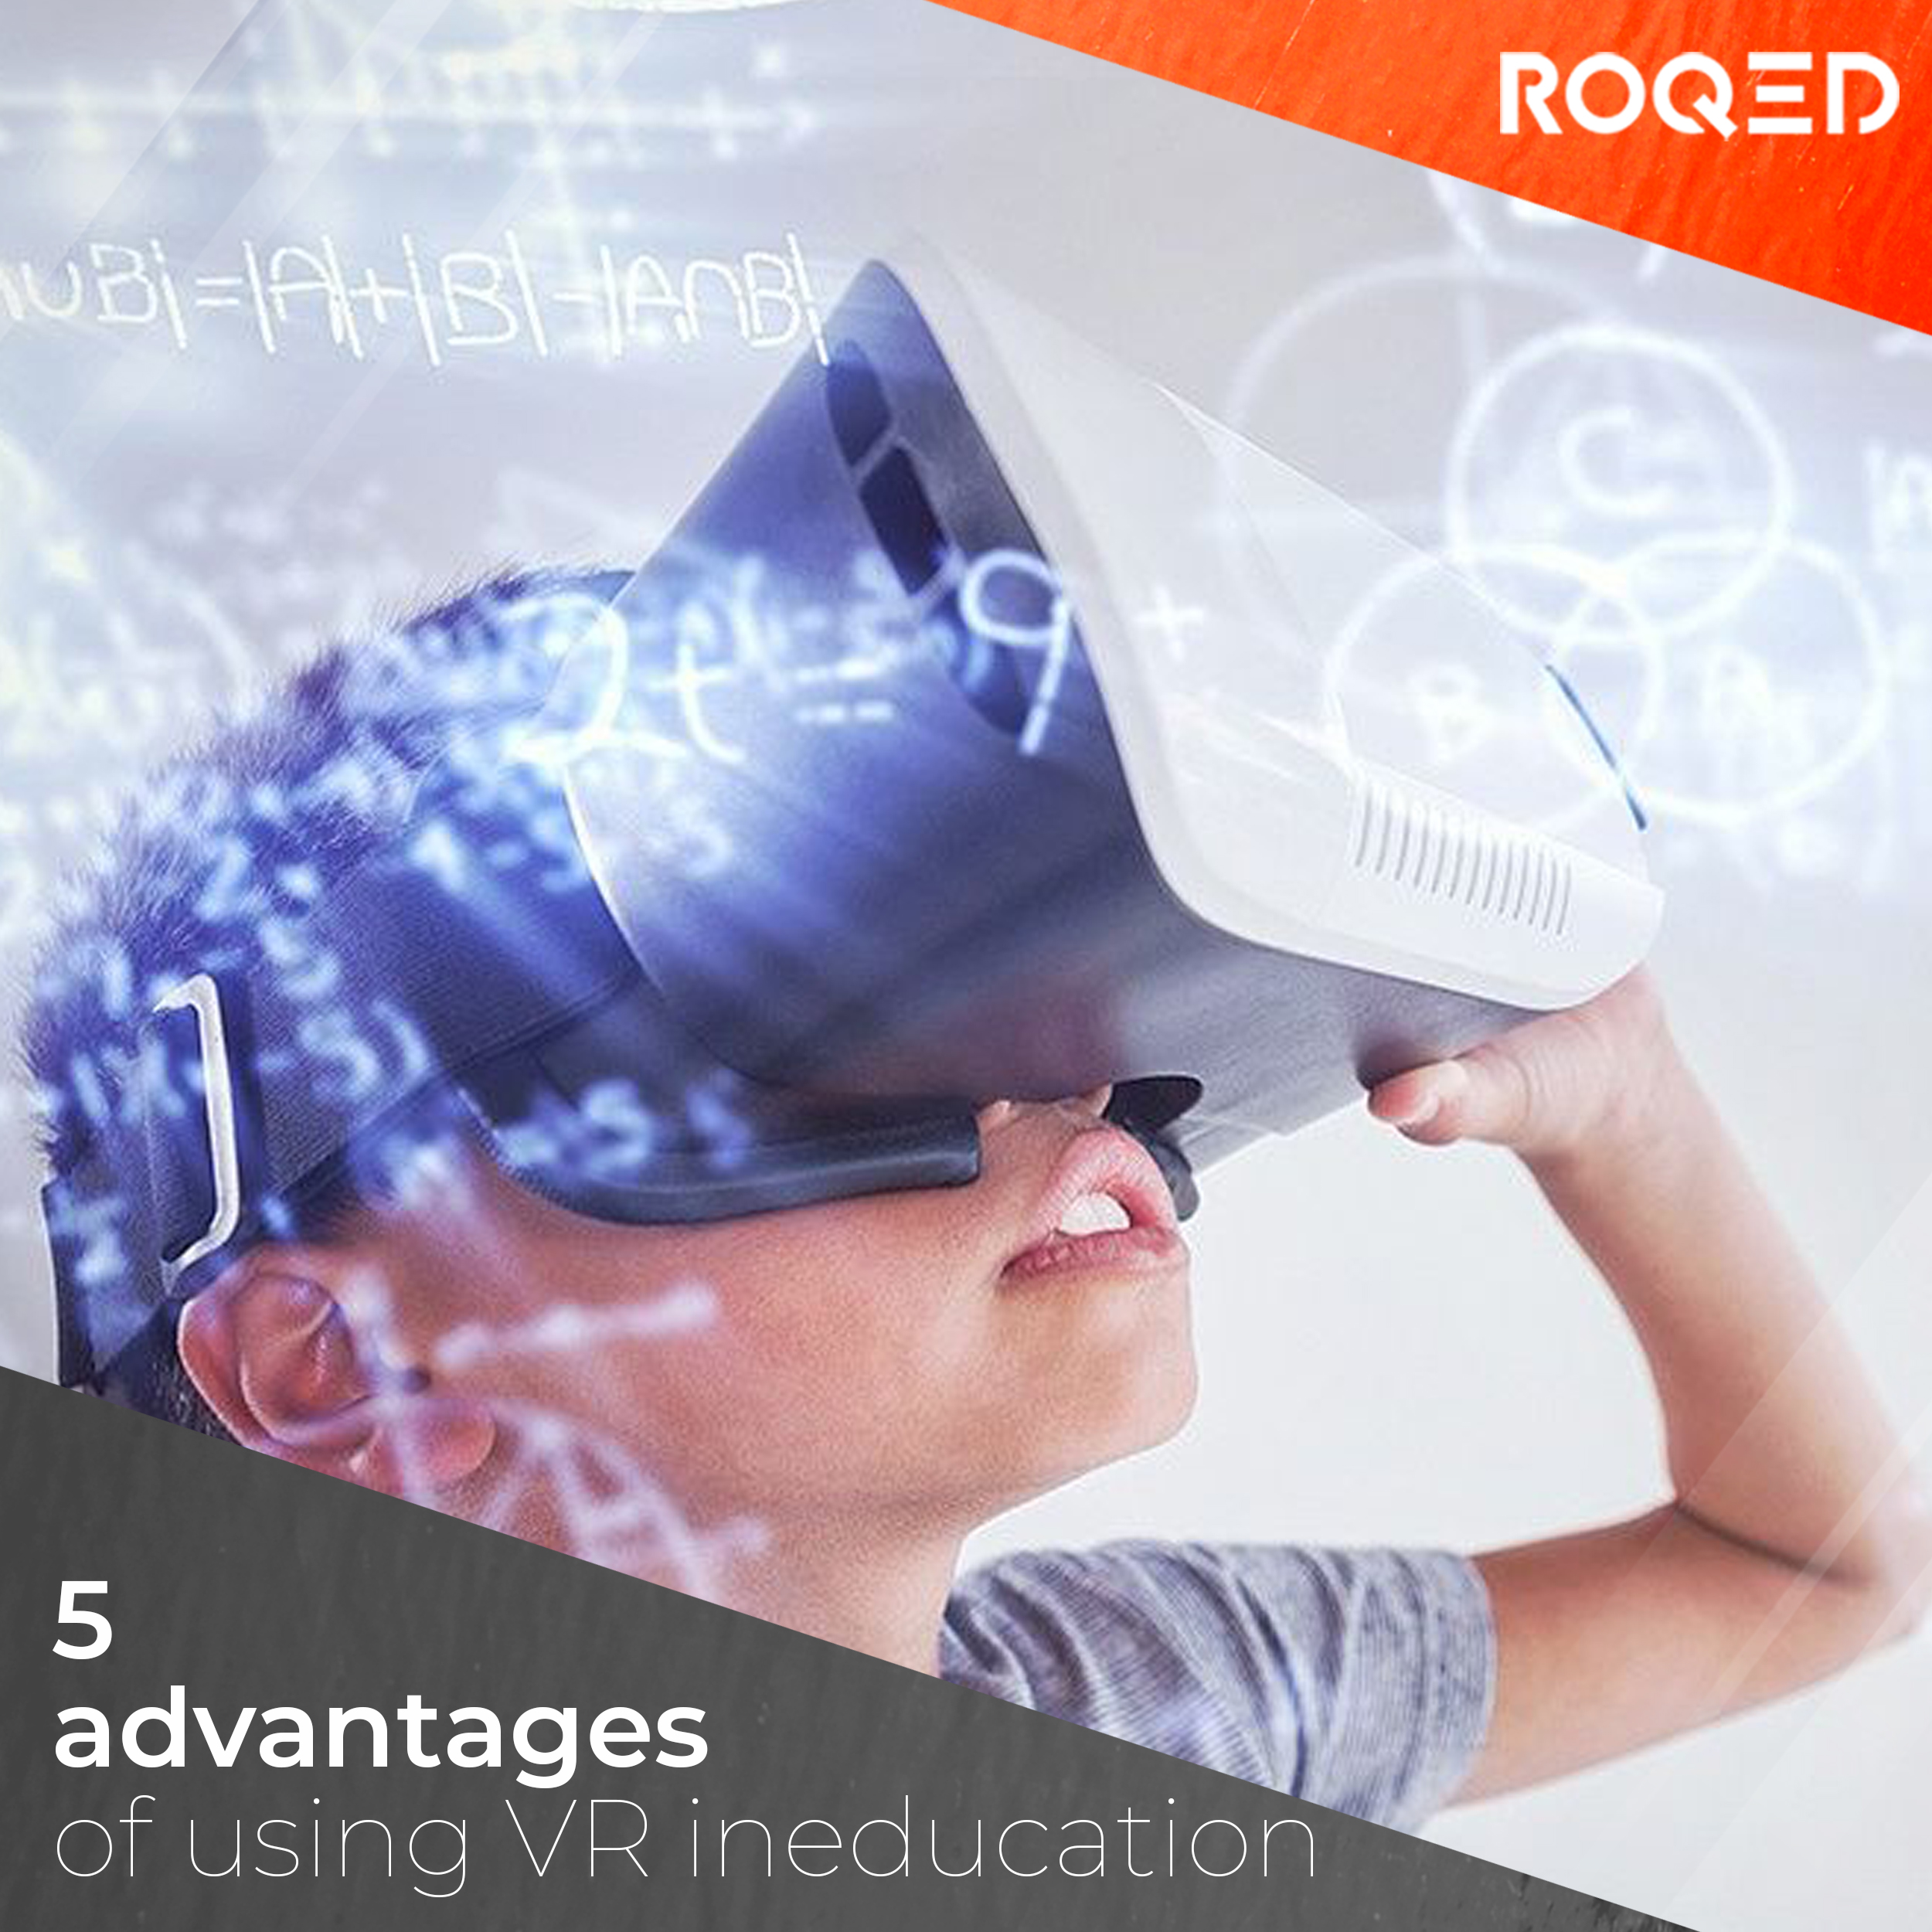 5 advantages of using VR in education.